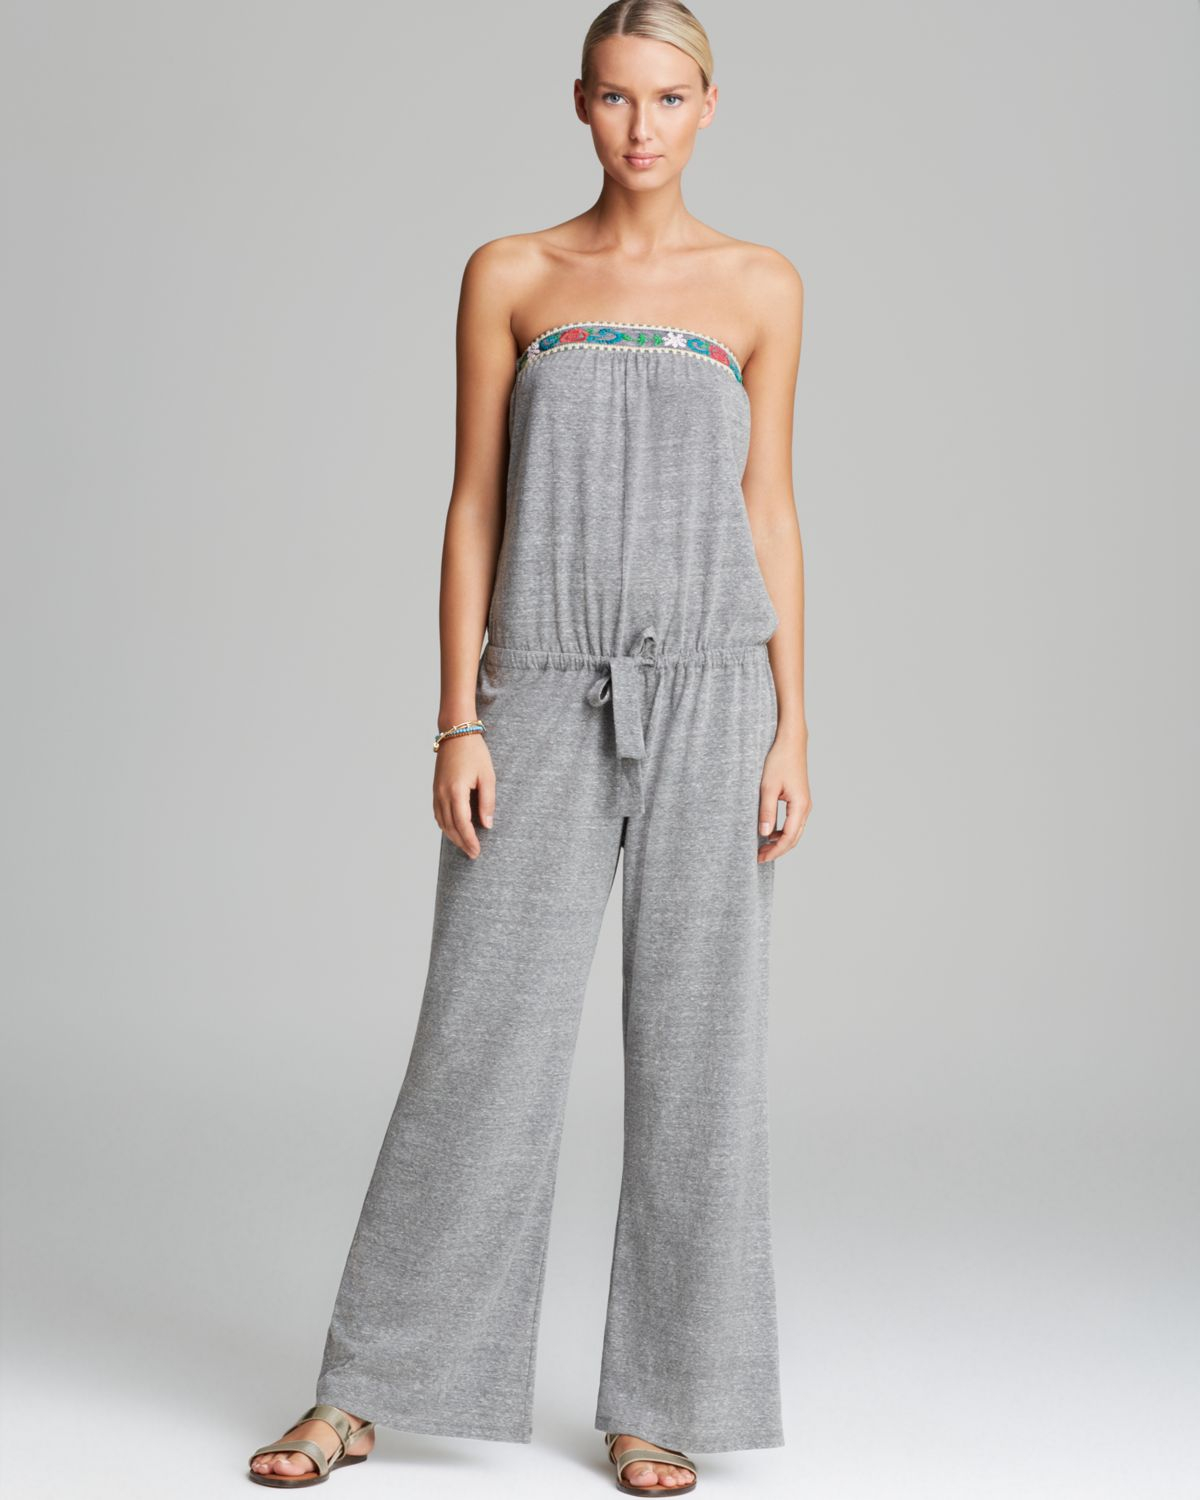 c8d37b769f93 Lyst - Lucky Brand French Tapestry Jumpsuit Swim Cover Up in Gray